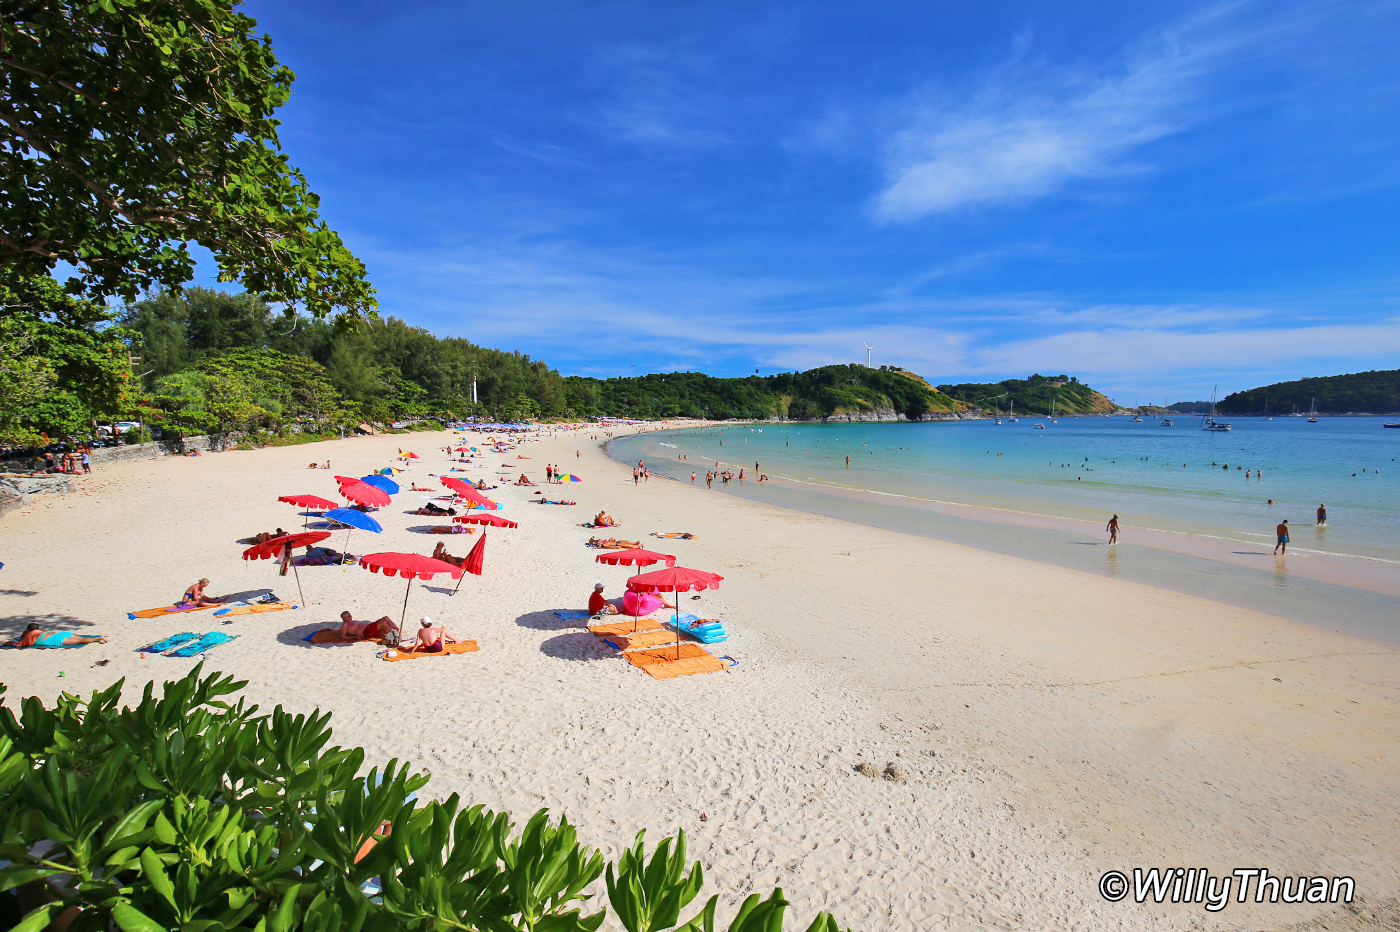 Nai Harn Beach – What to Do in Nai Harn Beach